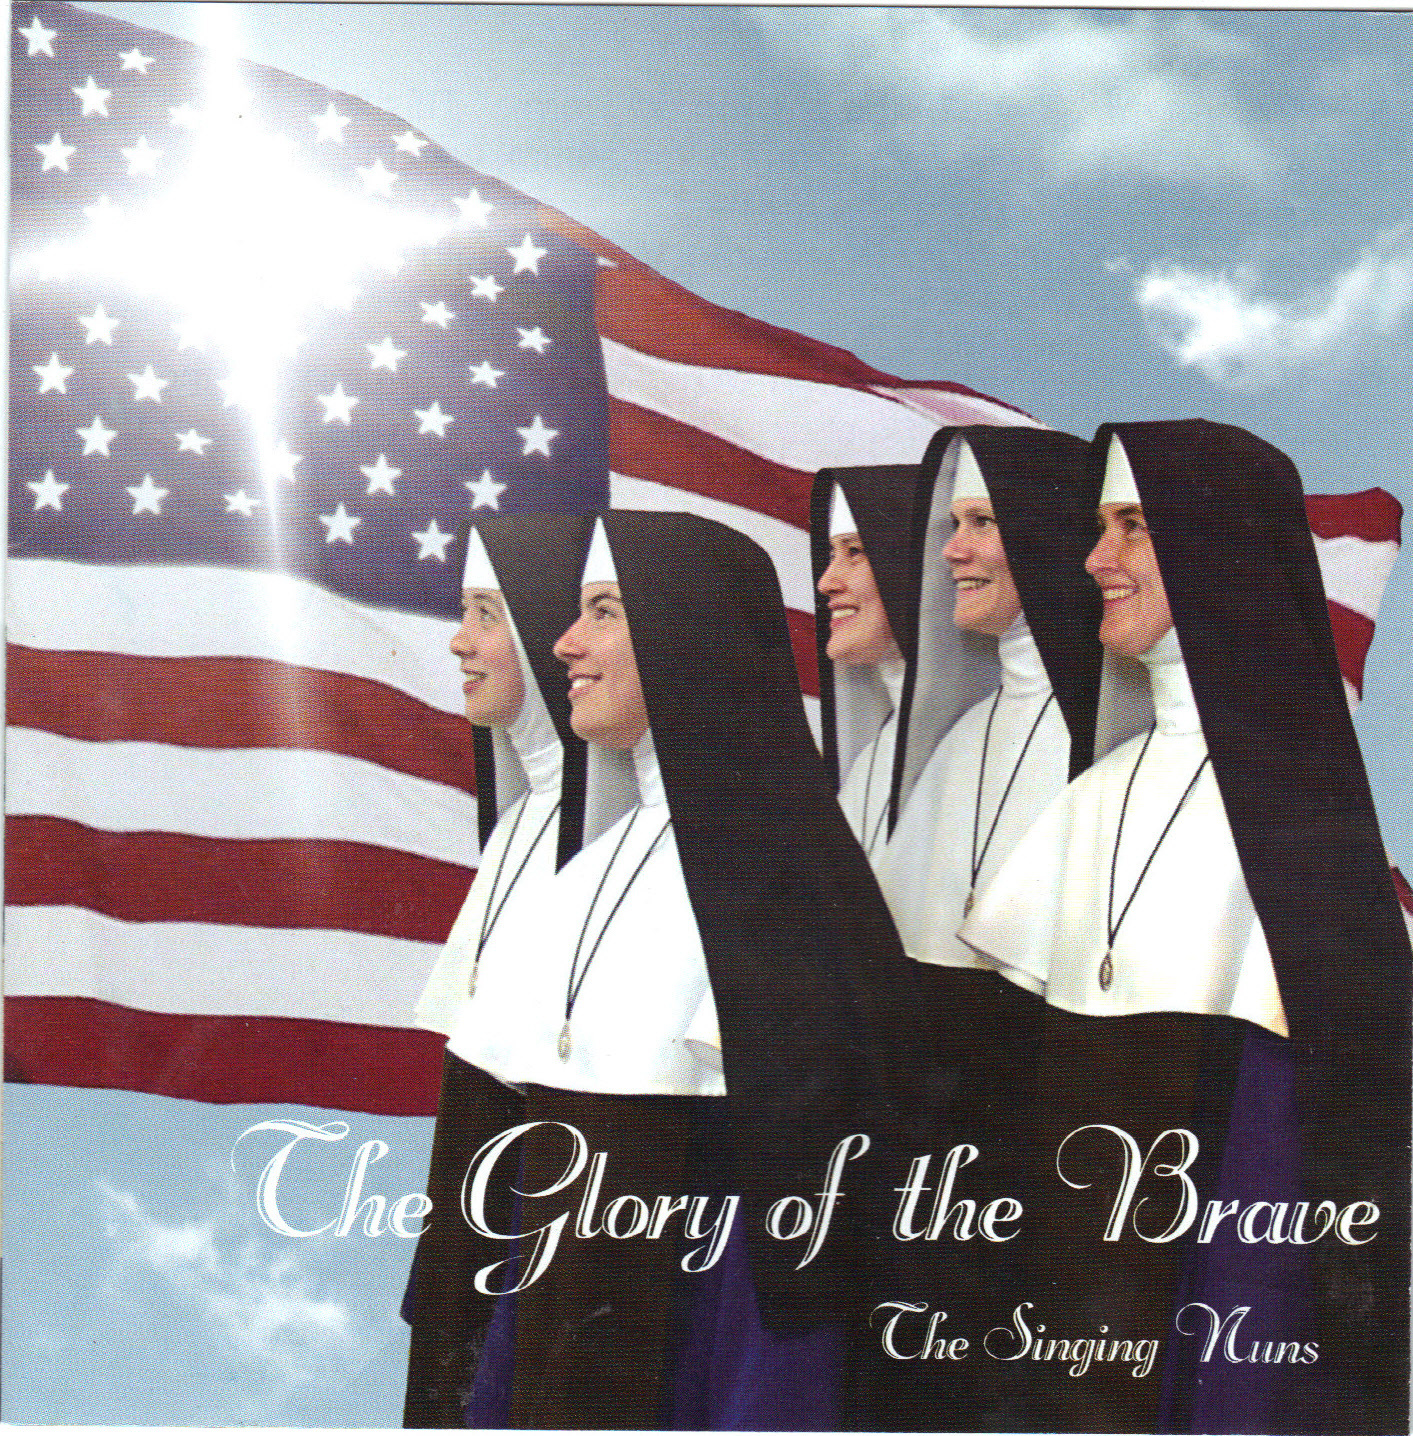 The glory of the brave cd44